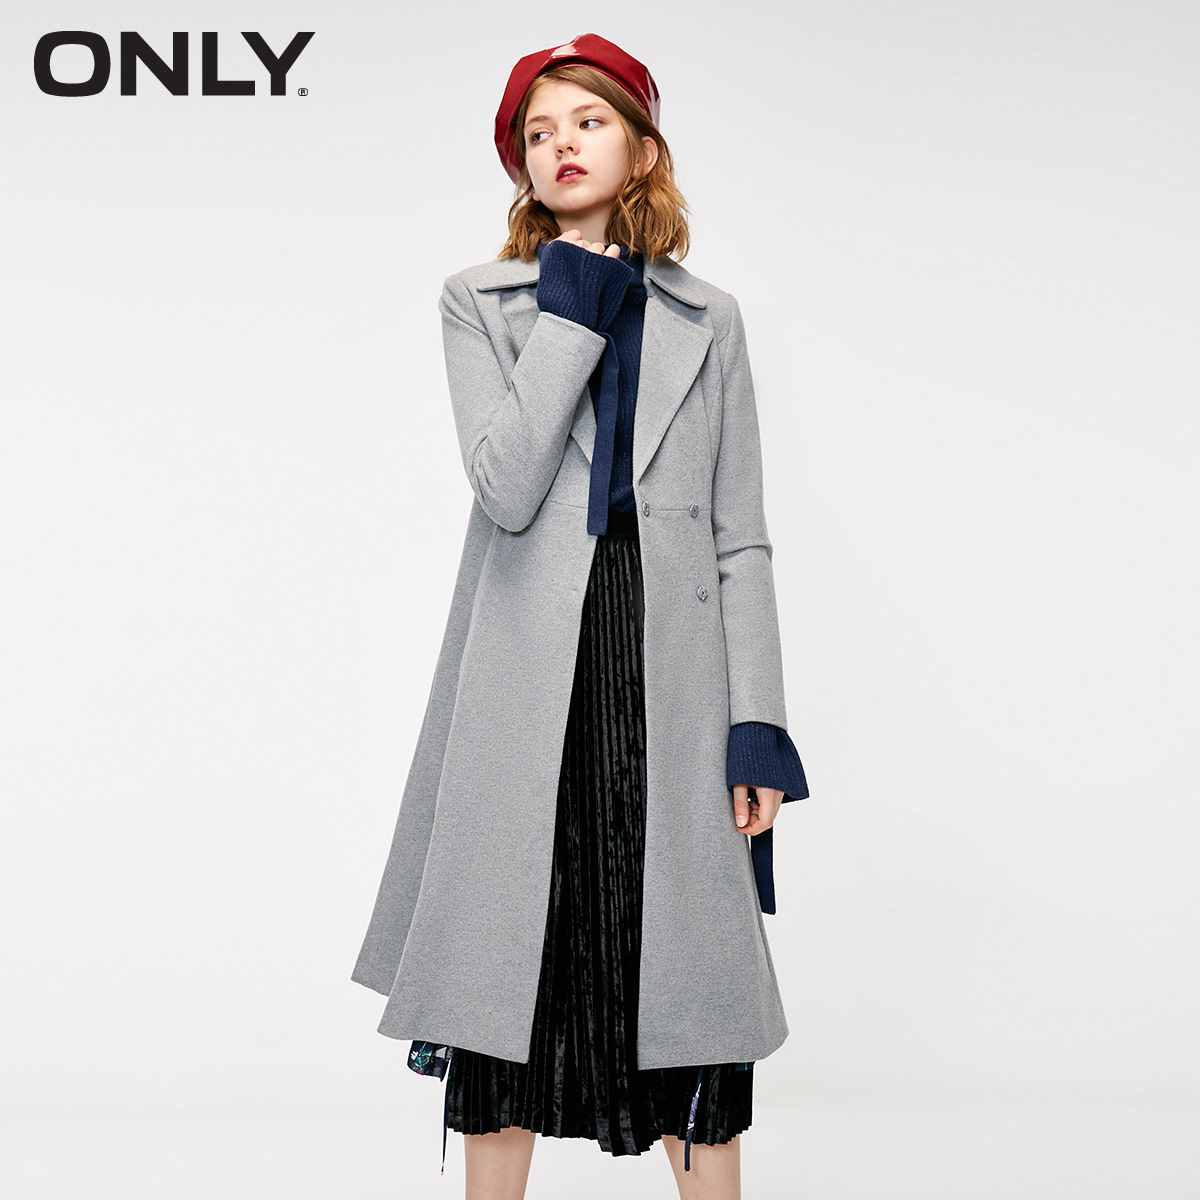 ONLY Women's Autumn New Tie Belt Long Trench Coat | 11831L501